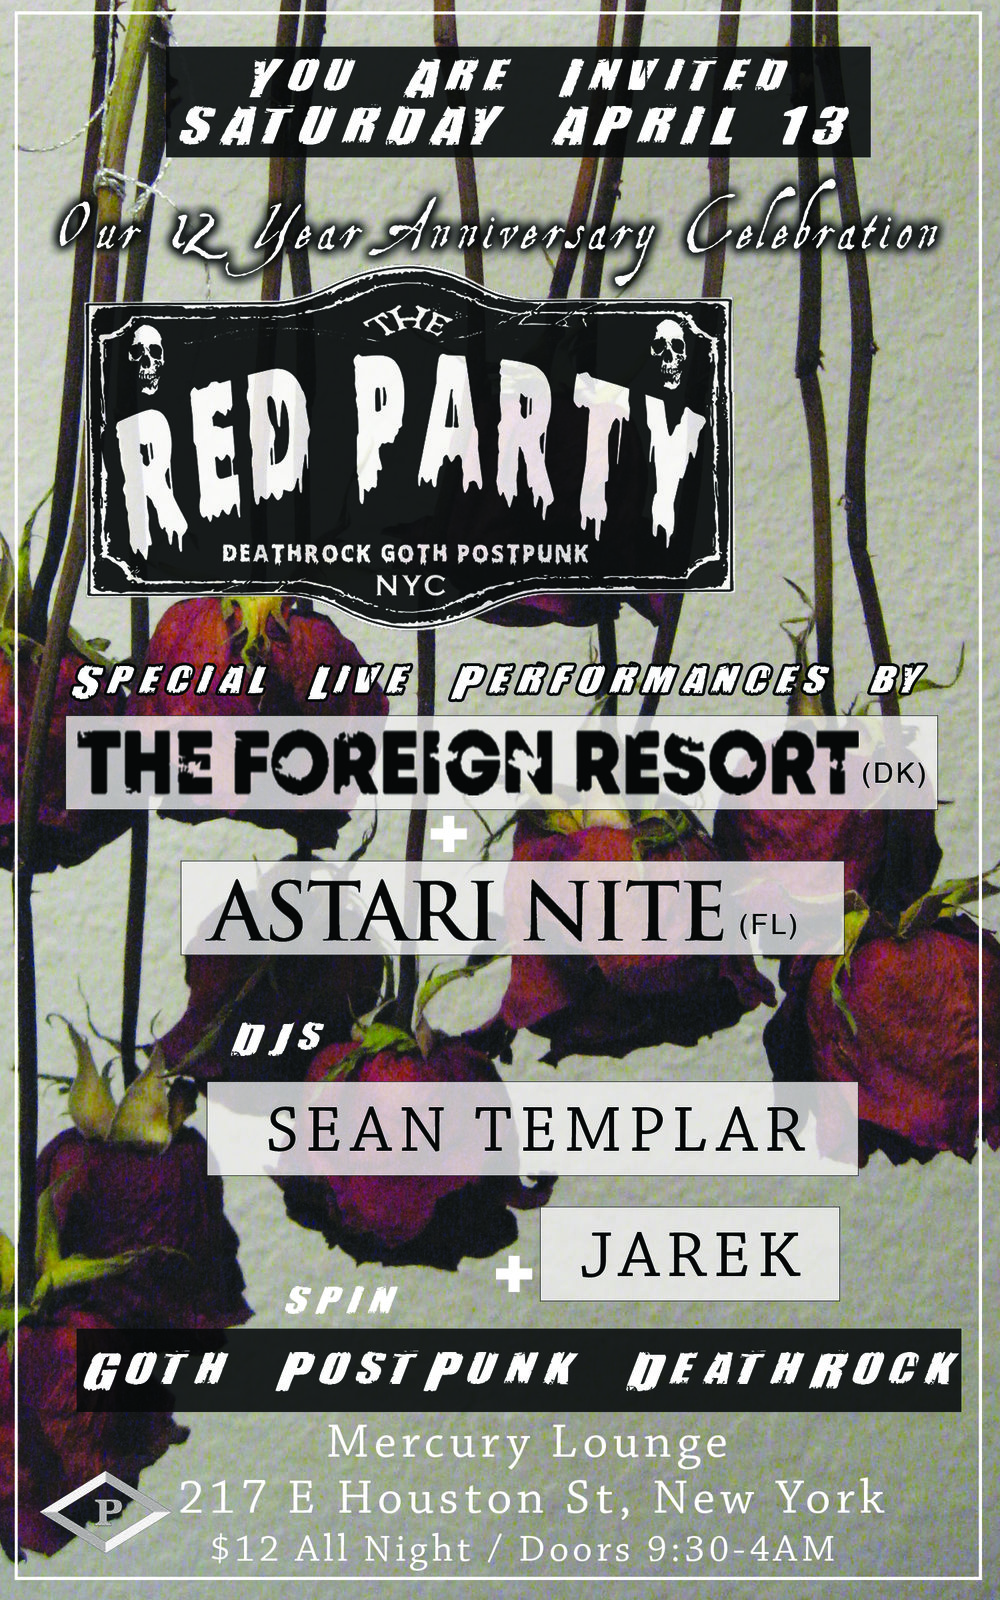 The Red Party - You are invited to our 12 Year Anniversary Party!Special Live Performances byThe Foreign Resort & Astari Nite!12 Years Fun in the Dark! with special guests and surprises all Night!